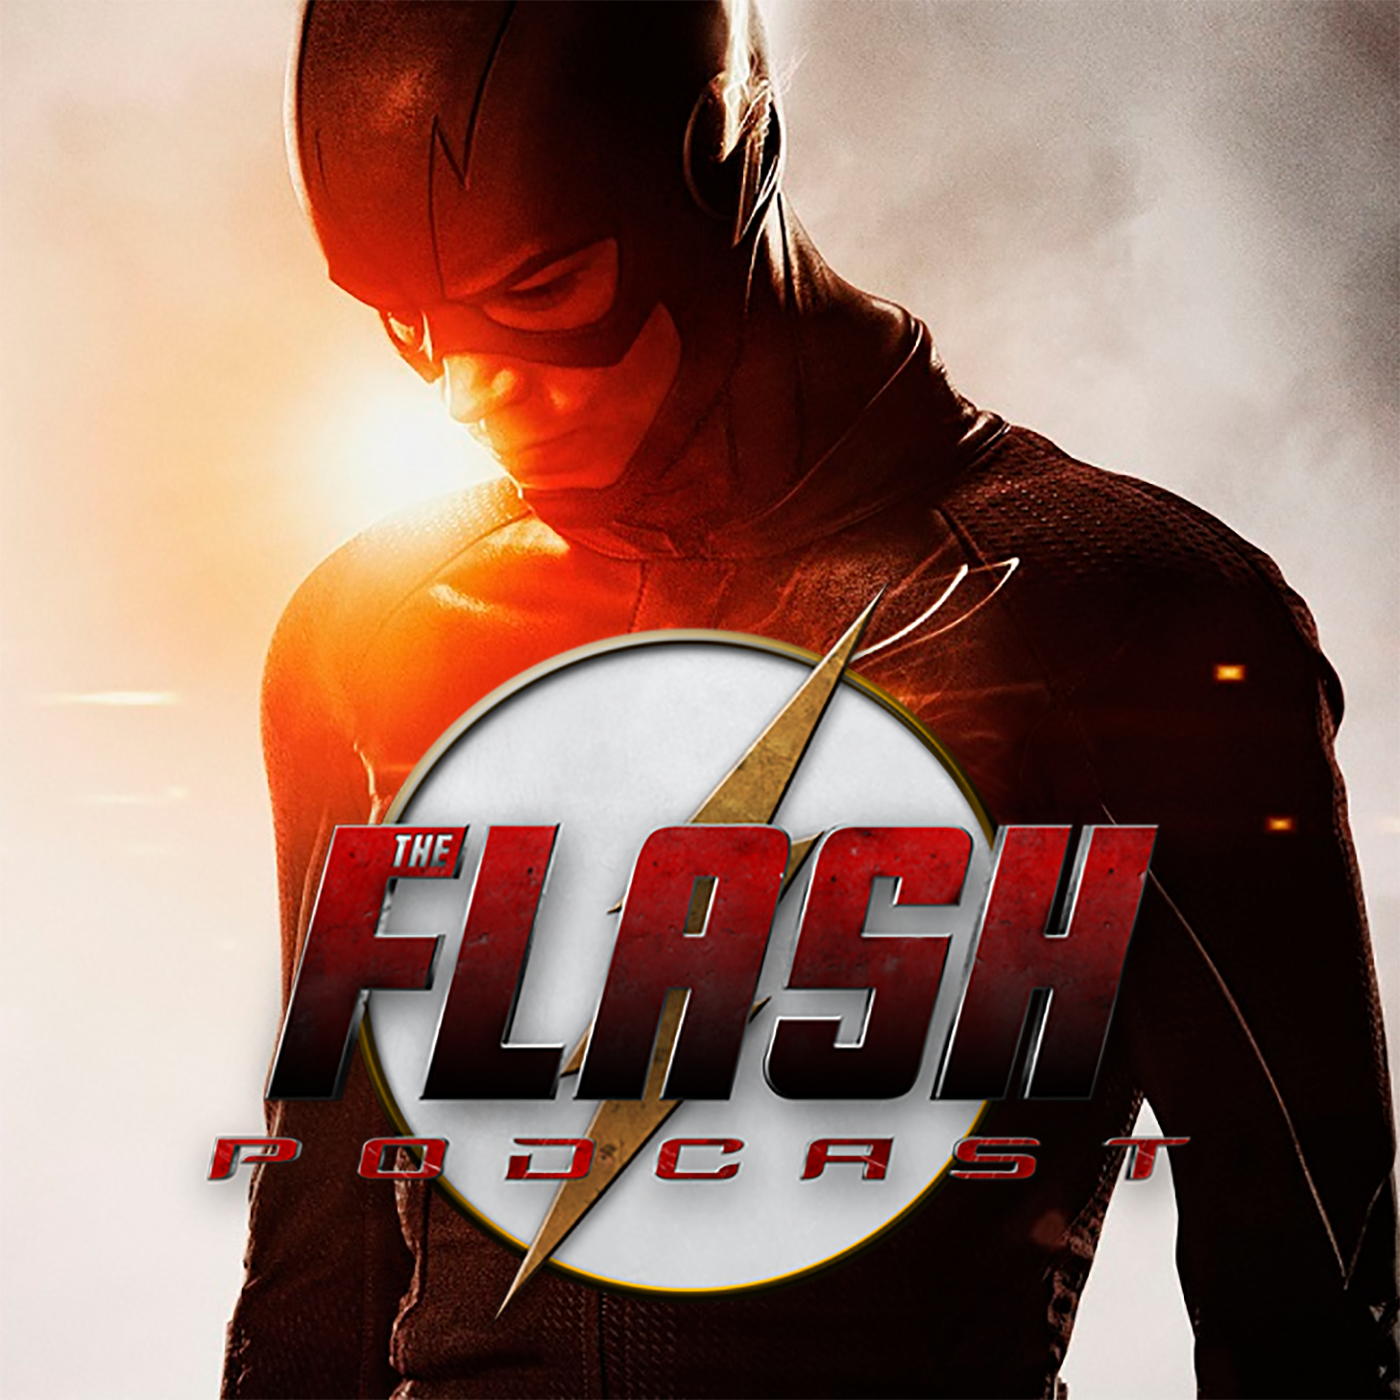 The Flash Podcast Season 1.5 - Eddie Thawne in Season 1